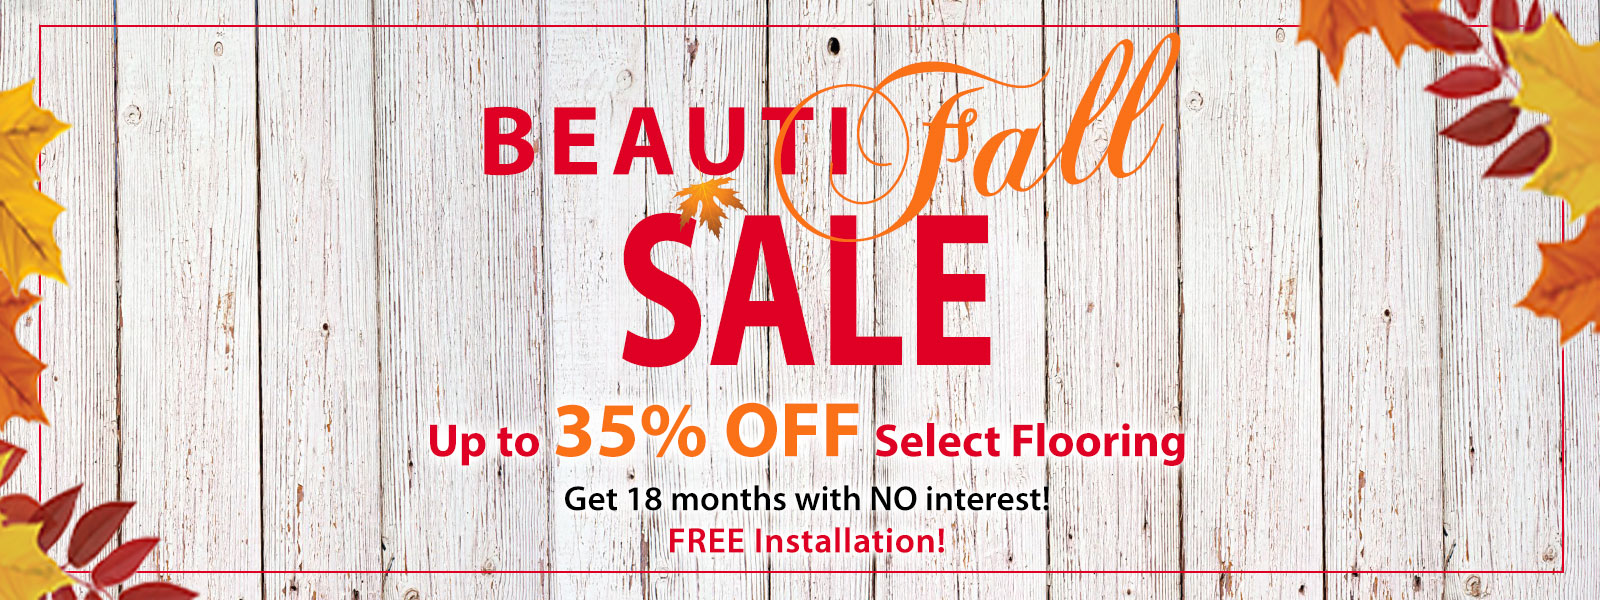 Beauti-Fall Flooring Sale, Up to 35% off Select Flooring